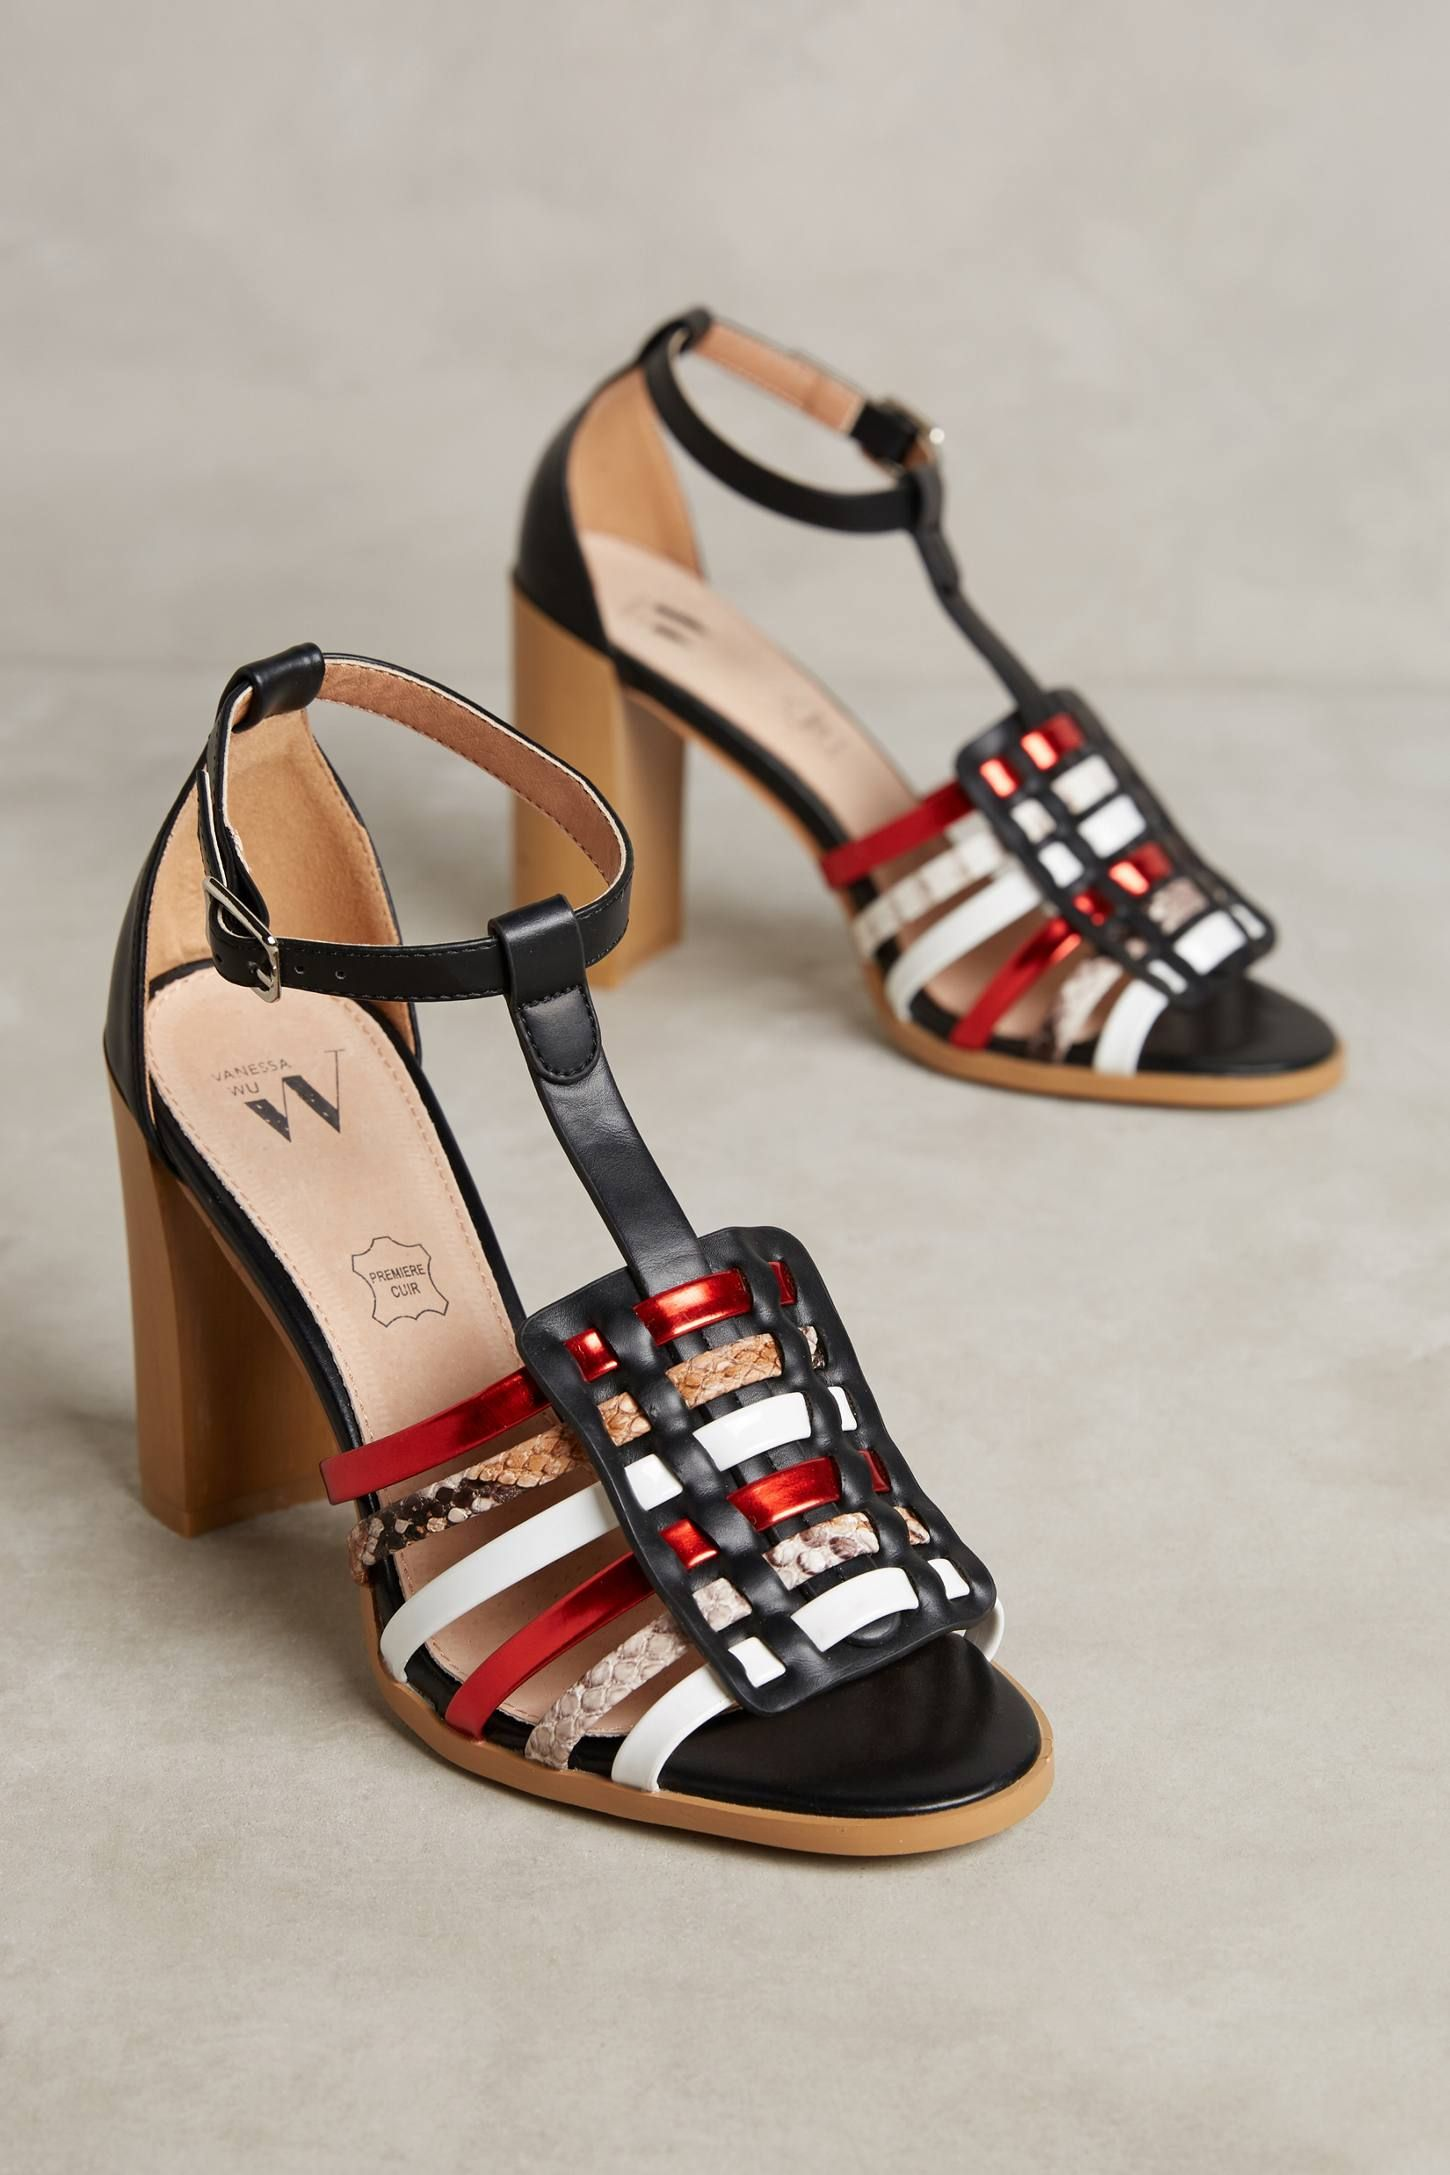 26f3dfd7bd Shop the Vanessa Wu Snake Print T-Strap Heeled Sandals and more  Anthropologie at Anthropologie today. Read customer reviews, discover  product details and ...